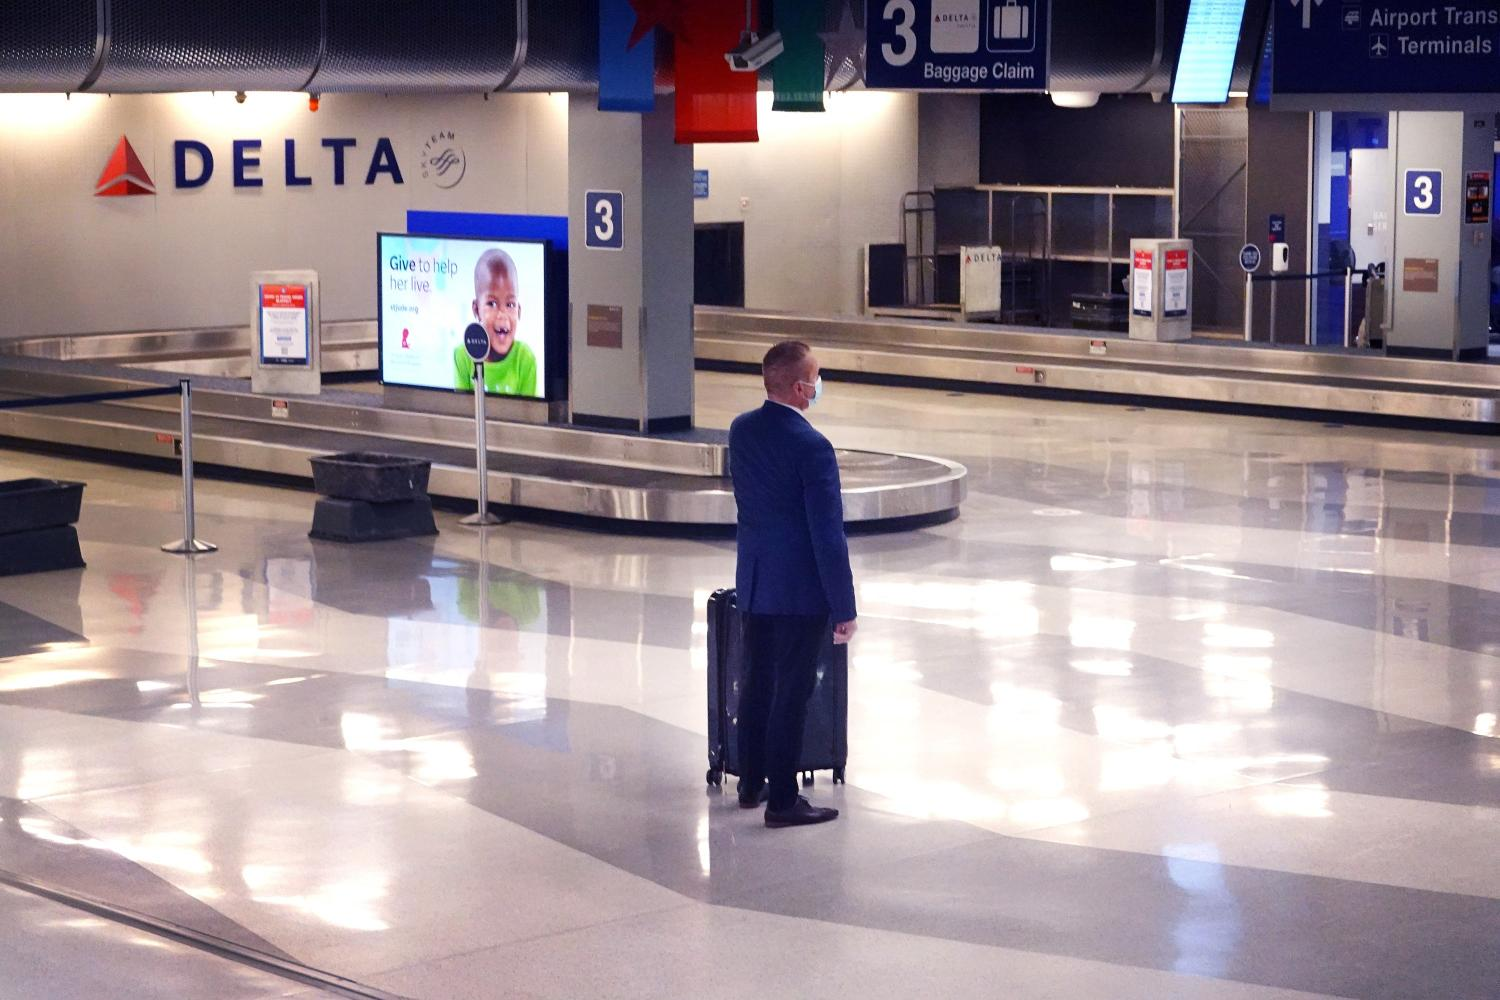 Baggage claims like this lonely one at O'Hare International Airport in Chicago will be busier post-pandemic, but it will take years to return to the level of business that airlines enjoyed in 2019. Some company trips are likely to be replaced by technology and never return.(Photo: Getty Images/AFP)